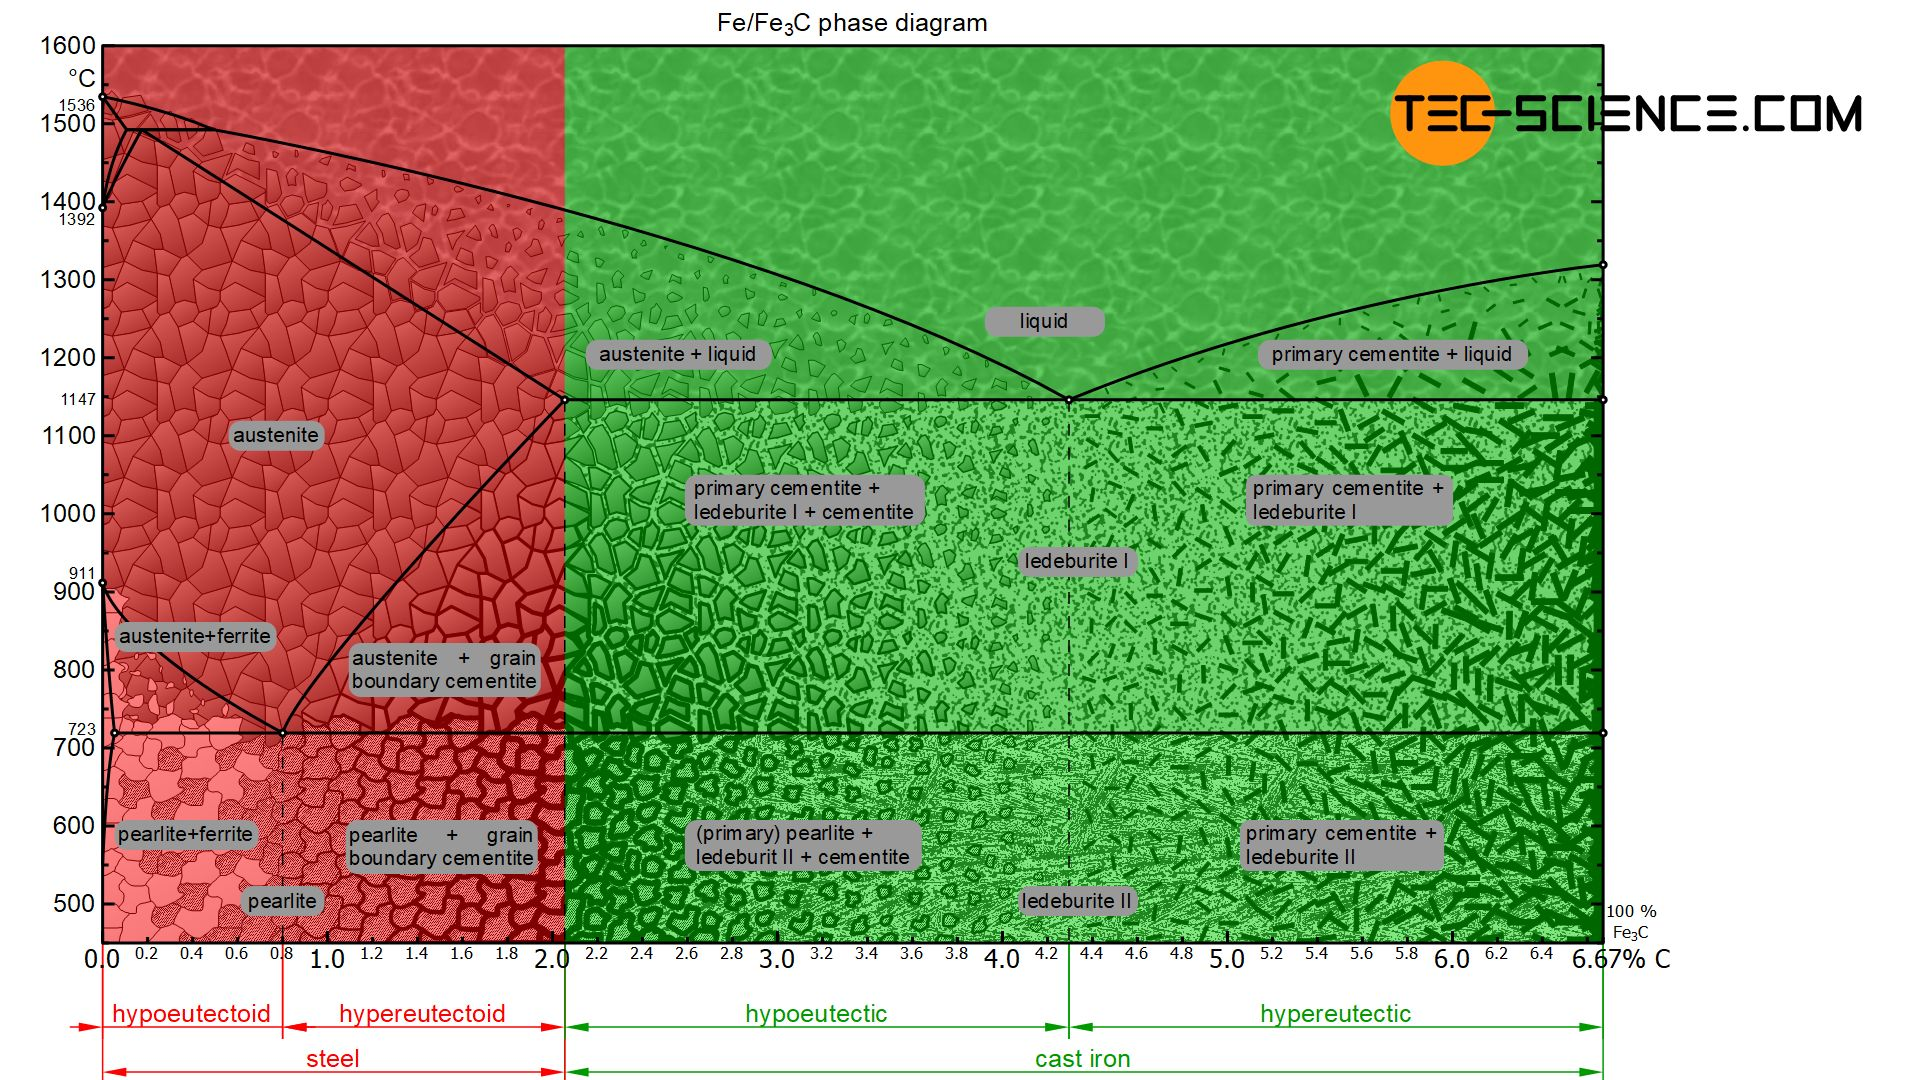 Classification of steels and cast iron in the iron-carbon phase diagram